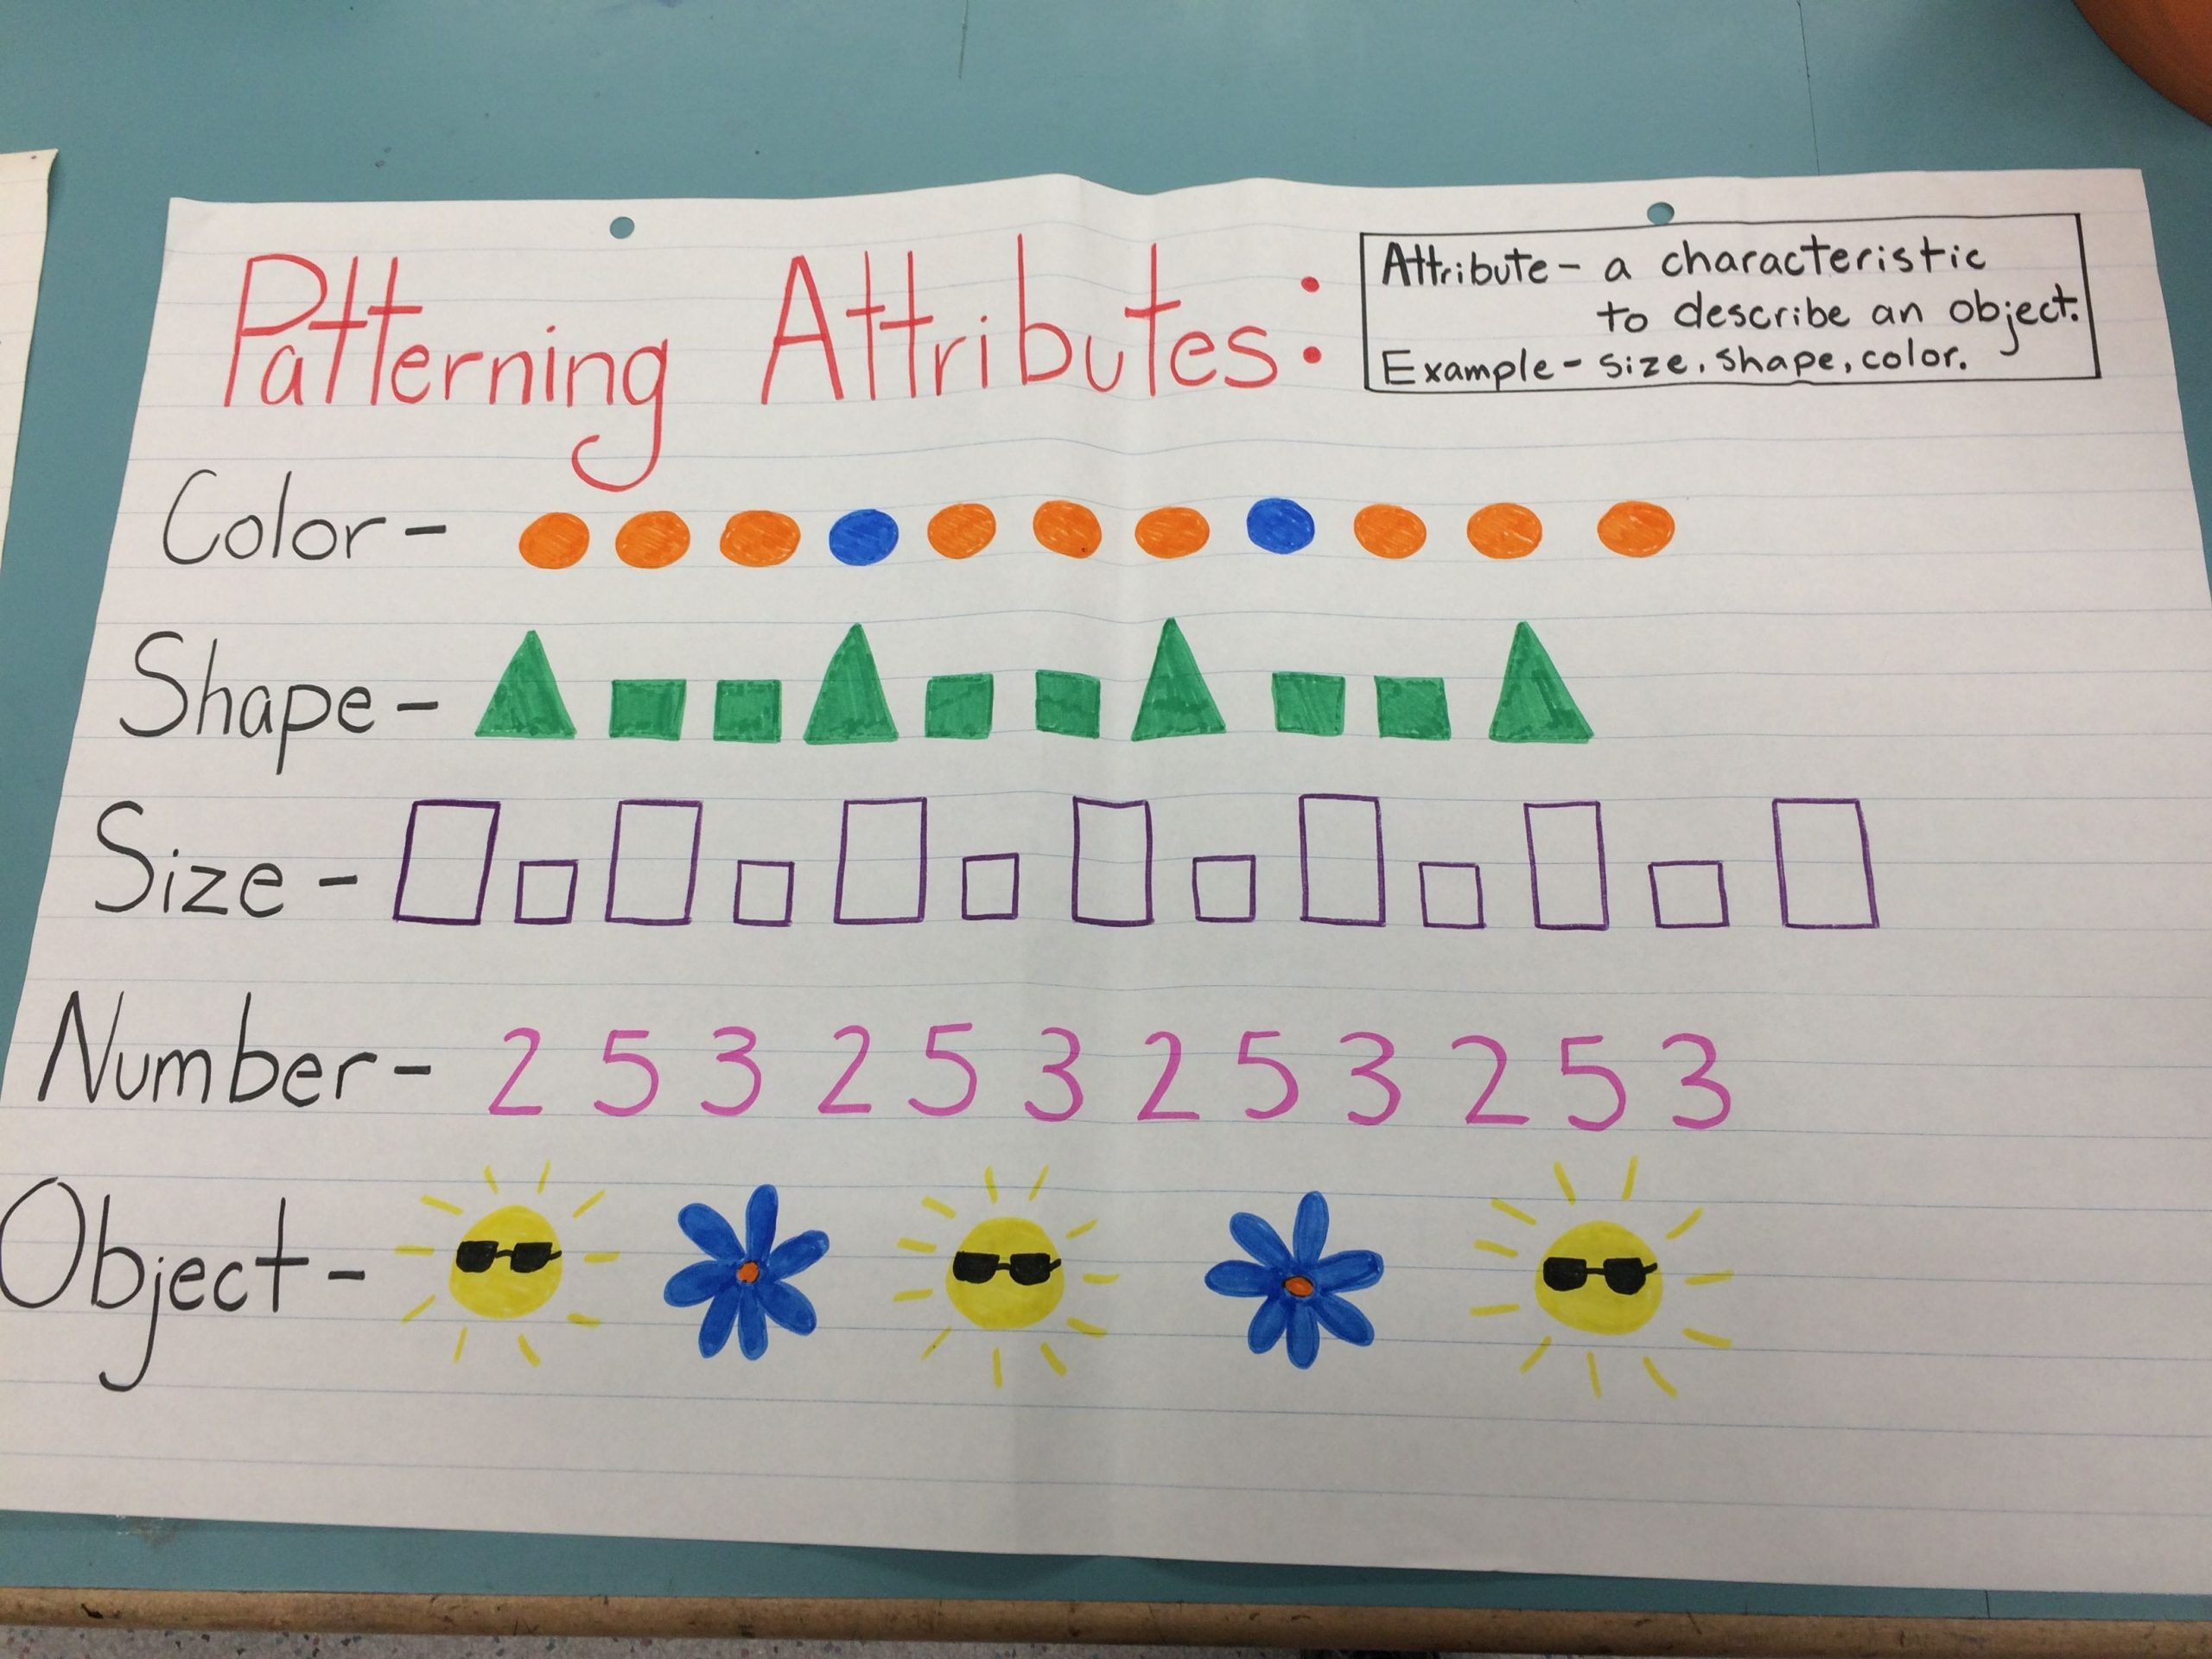 Geometric Shape Patterns Worksheet Pattering attributes Anchor Chart Patterns are Way More